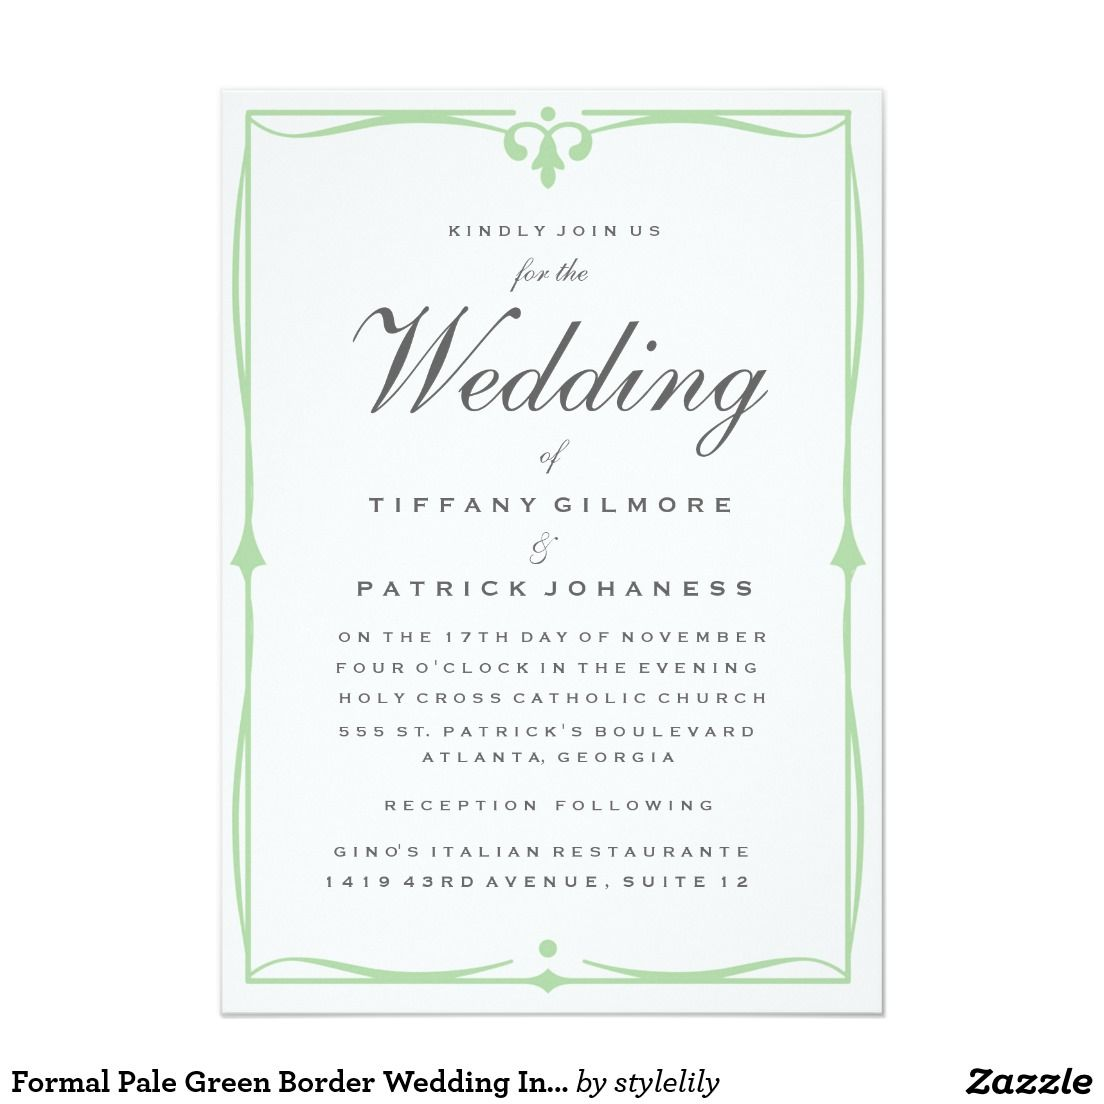 Formal pale green border wedding invitation 5 x 7 invitation card formal pale green border wedding invitation 5 x 7 invitation card available in other color options to match your wedding theme stopboris Gallery